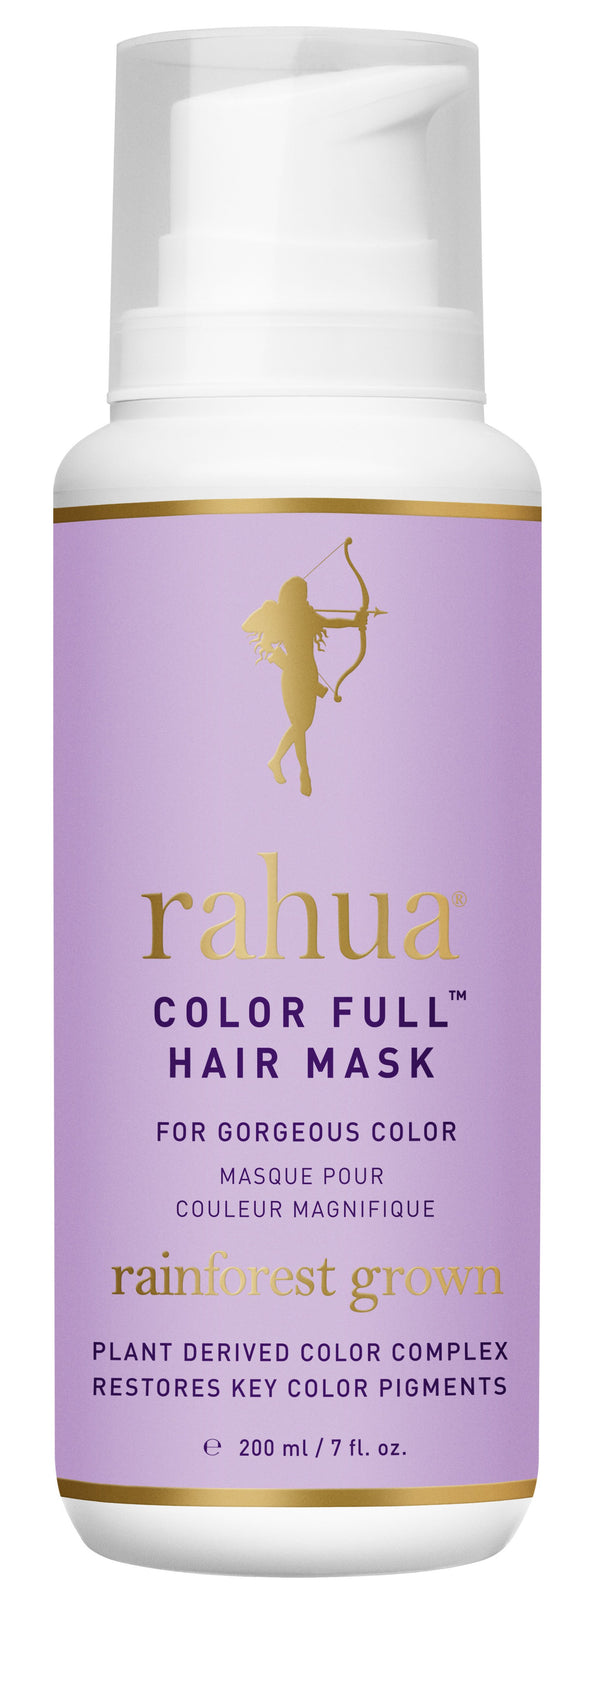 Color Full™ Hair Mask